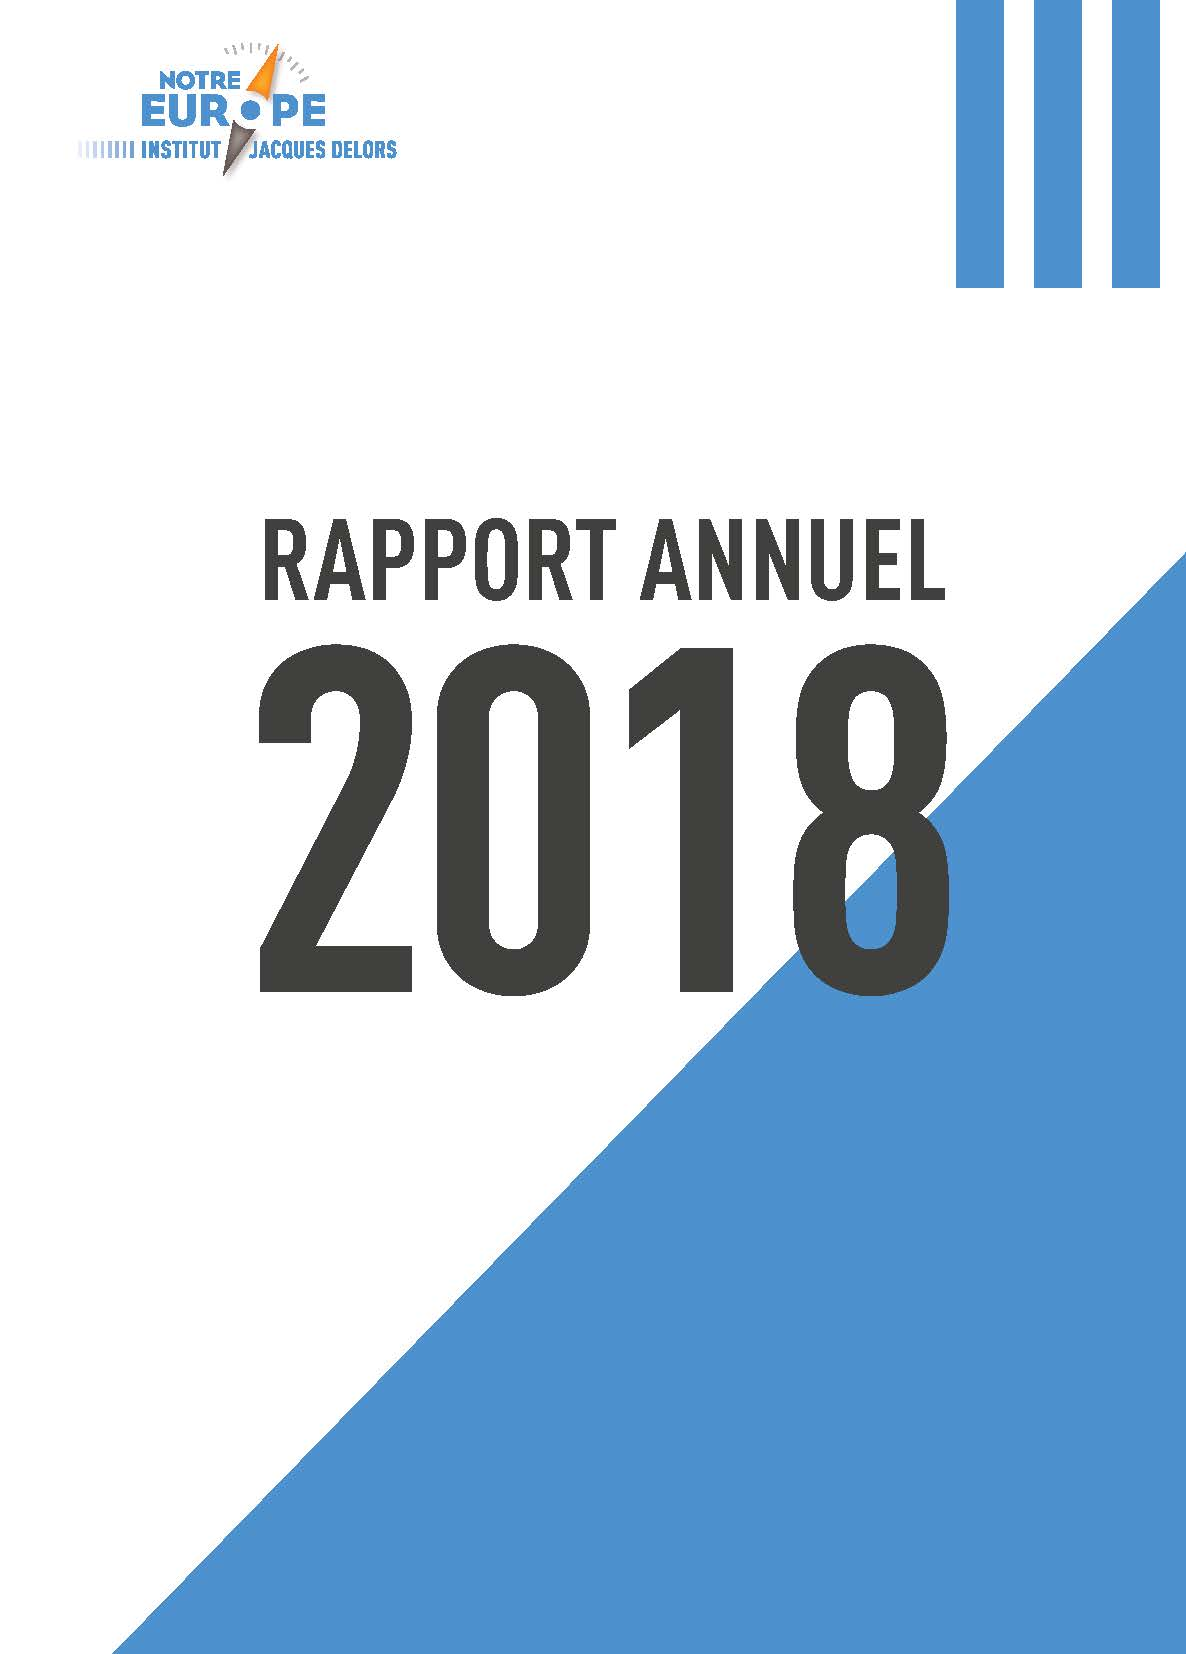 https://institutdelors.eu/wp-content/uploads/2019/07/Rapport-annuel-2018-FR.pdf